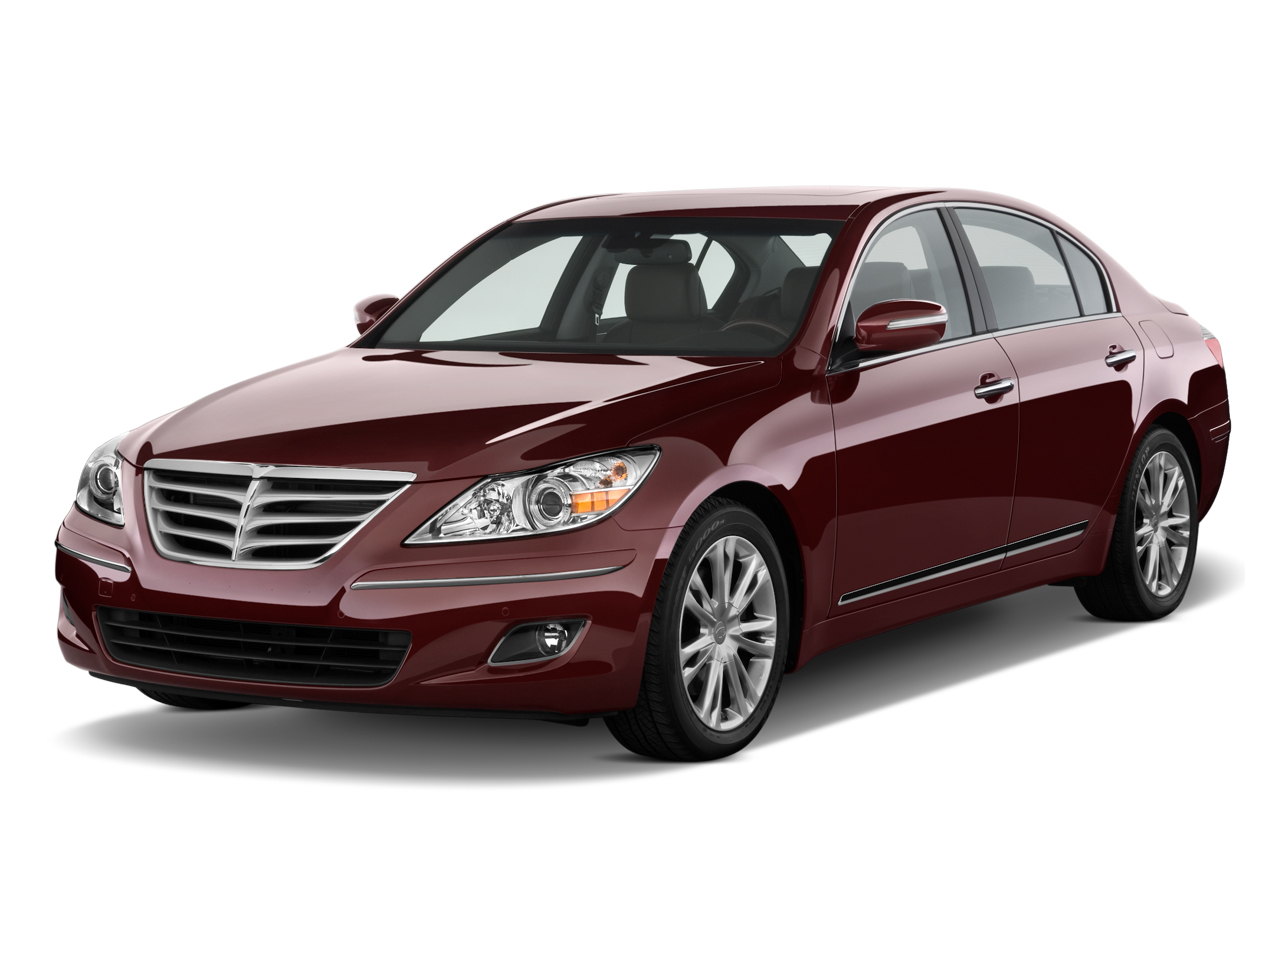 2011 Hyundai Genesis Review Ratings Specs Prices And